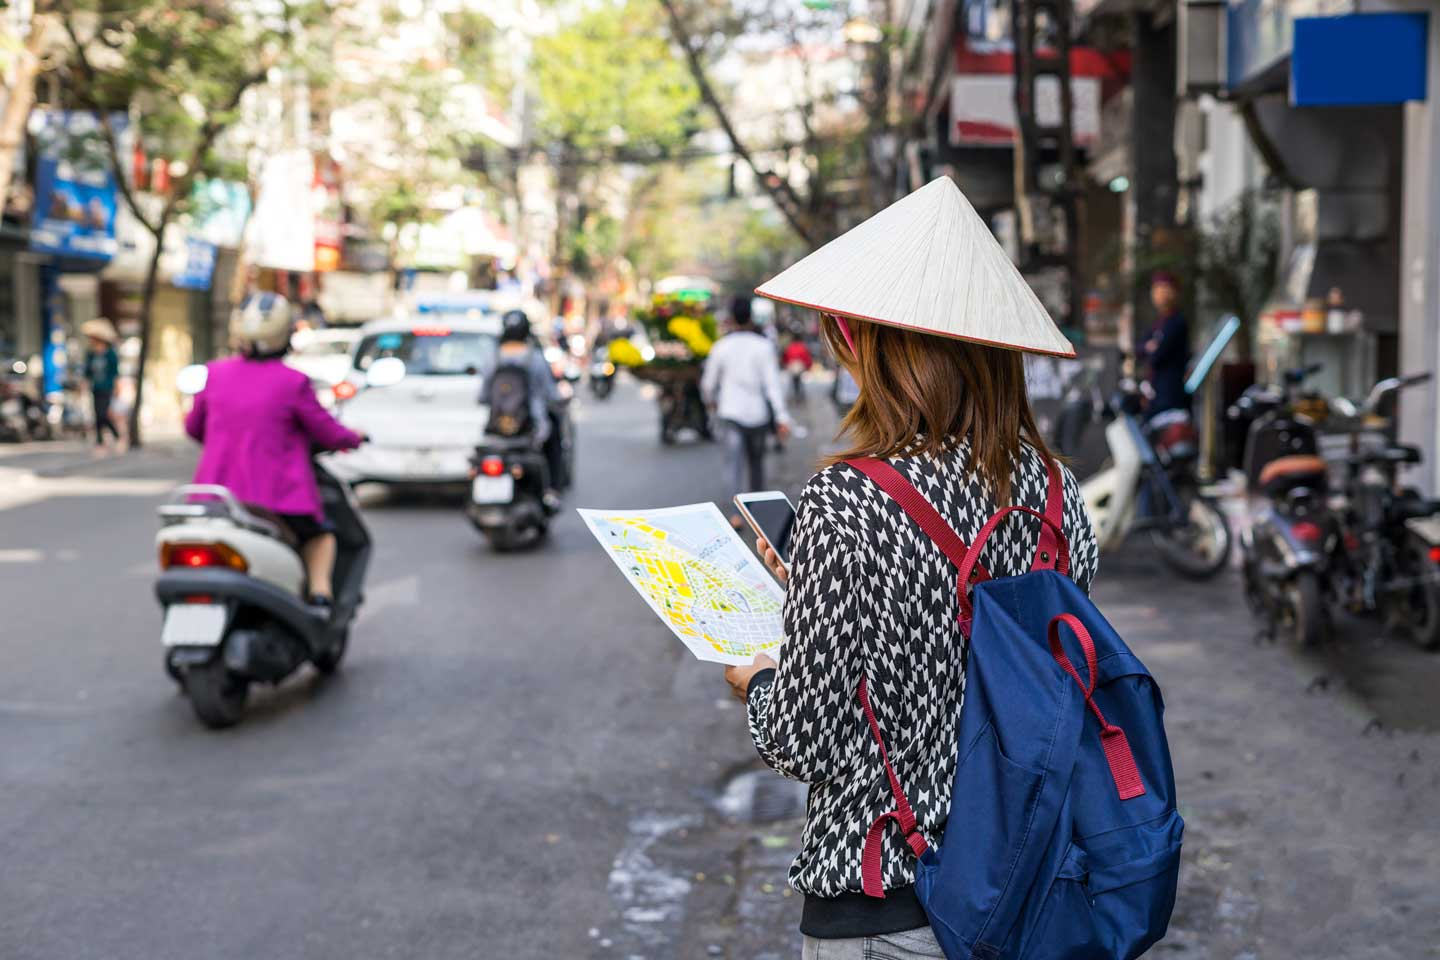 11 Things to Do in Hanoi That You Shouldn't Miss